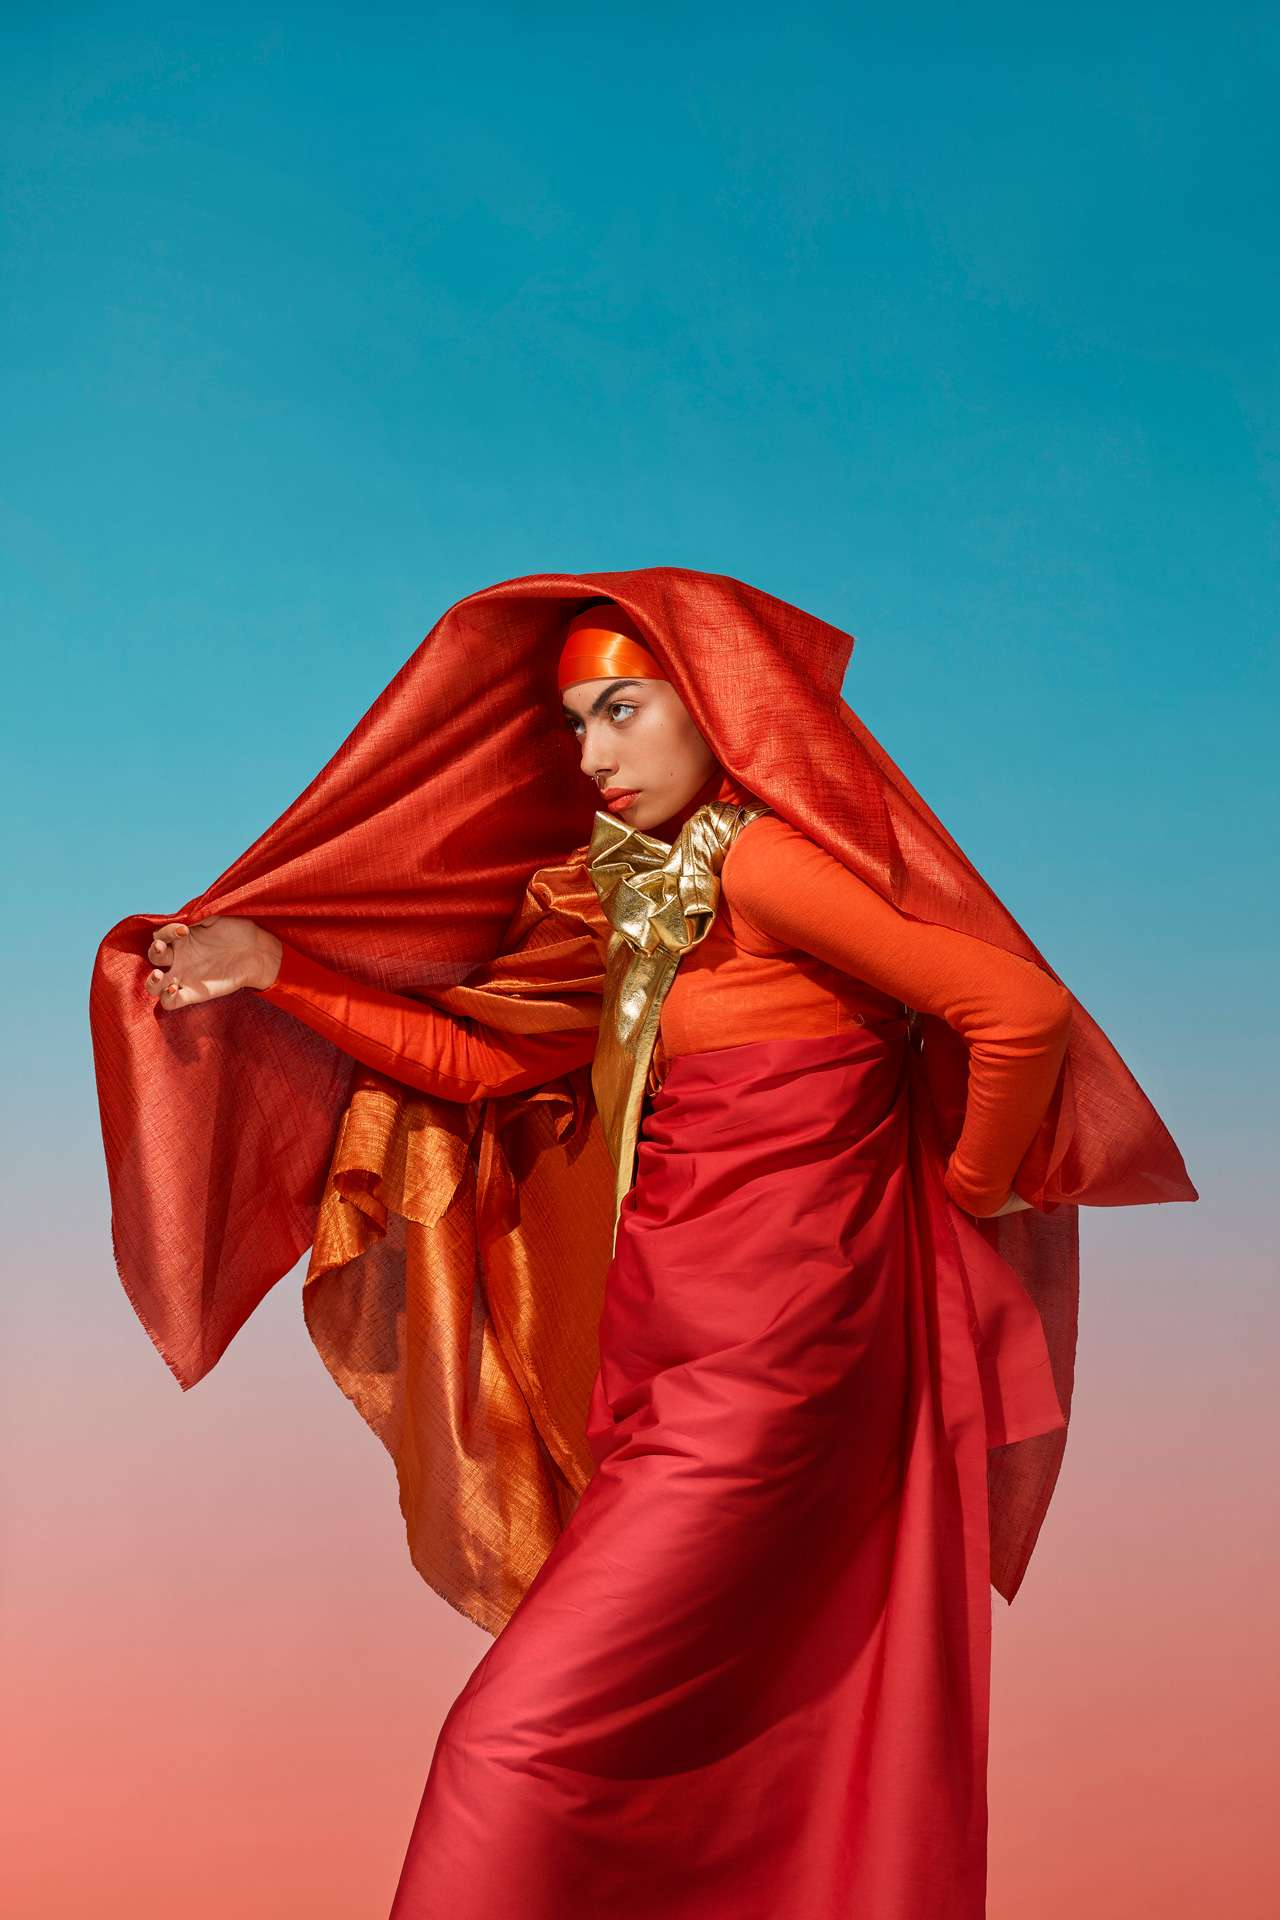 woman of indian origin in layered pieces of red and yellow fabric giving a sari feel emulating indian choreography by Simon Duhamel for SAND